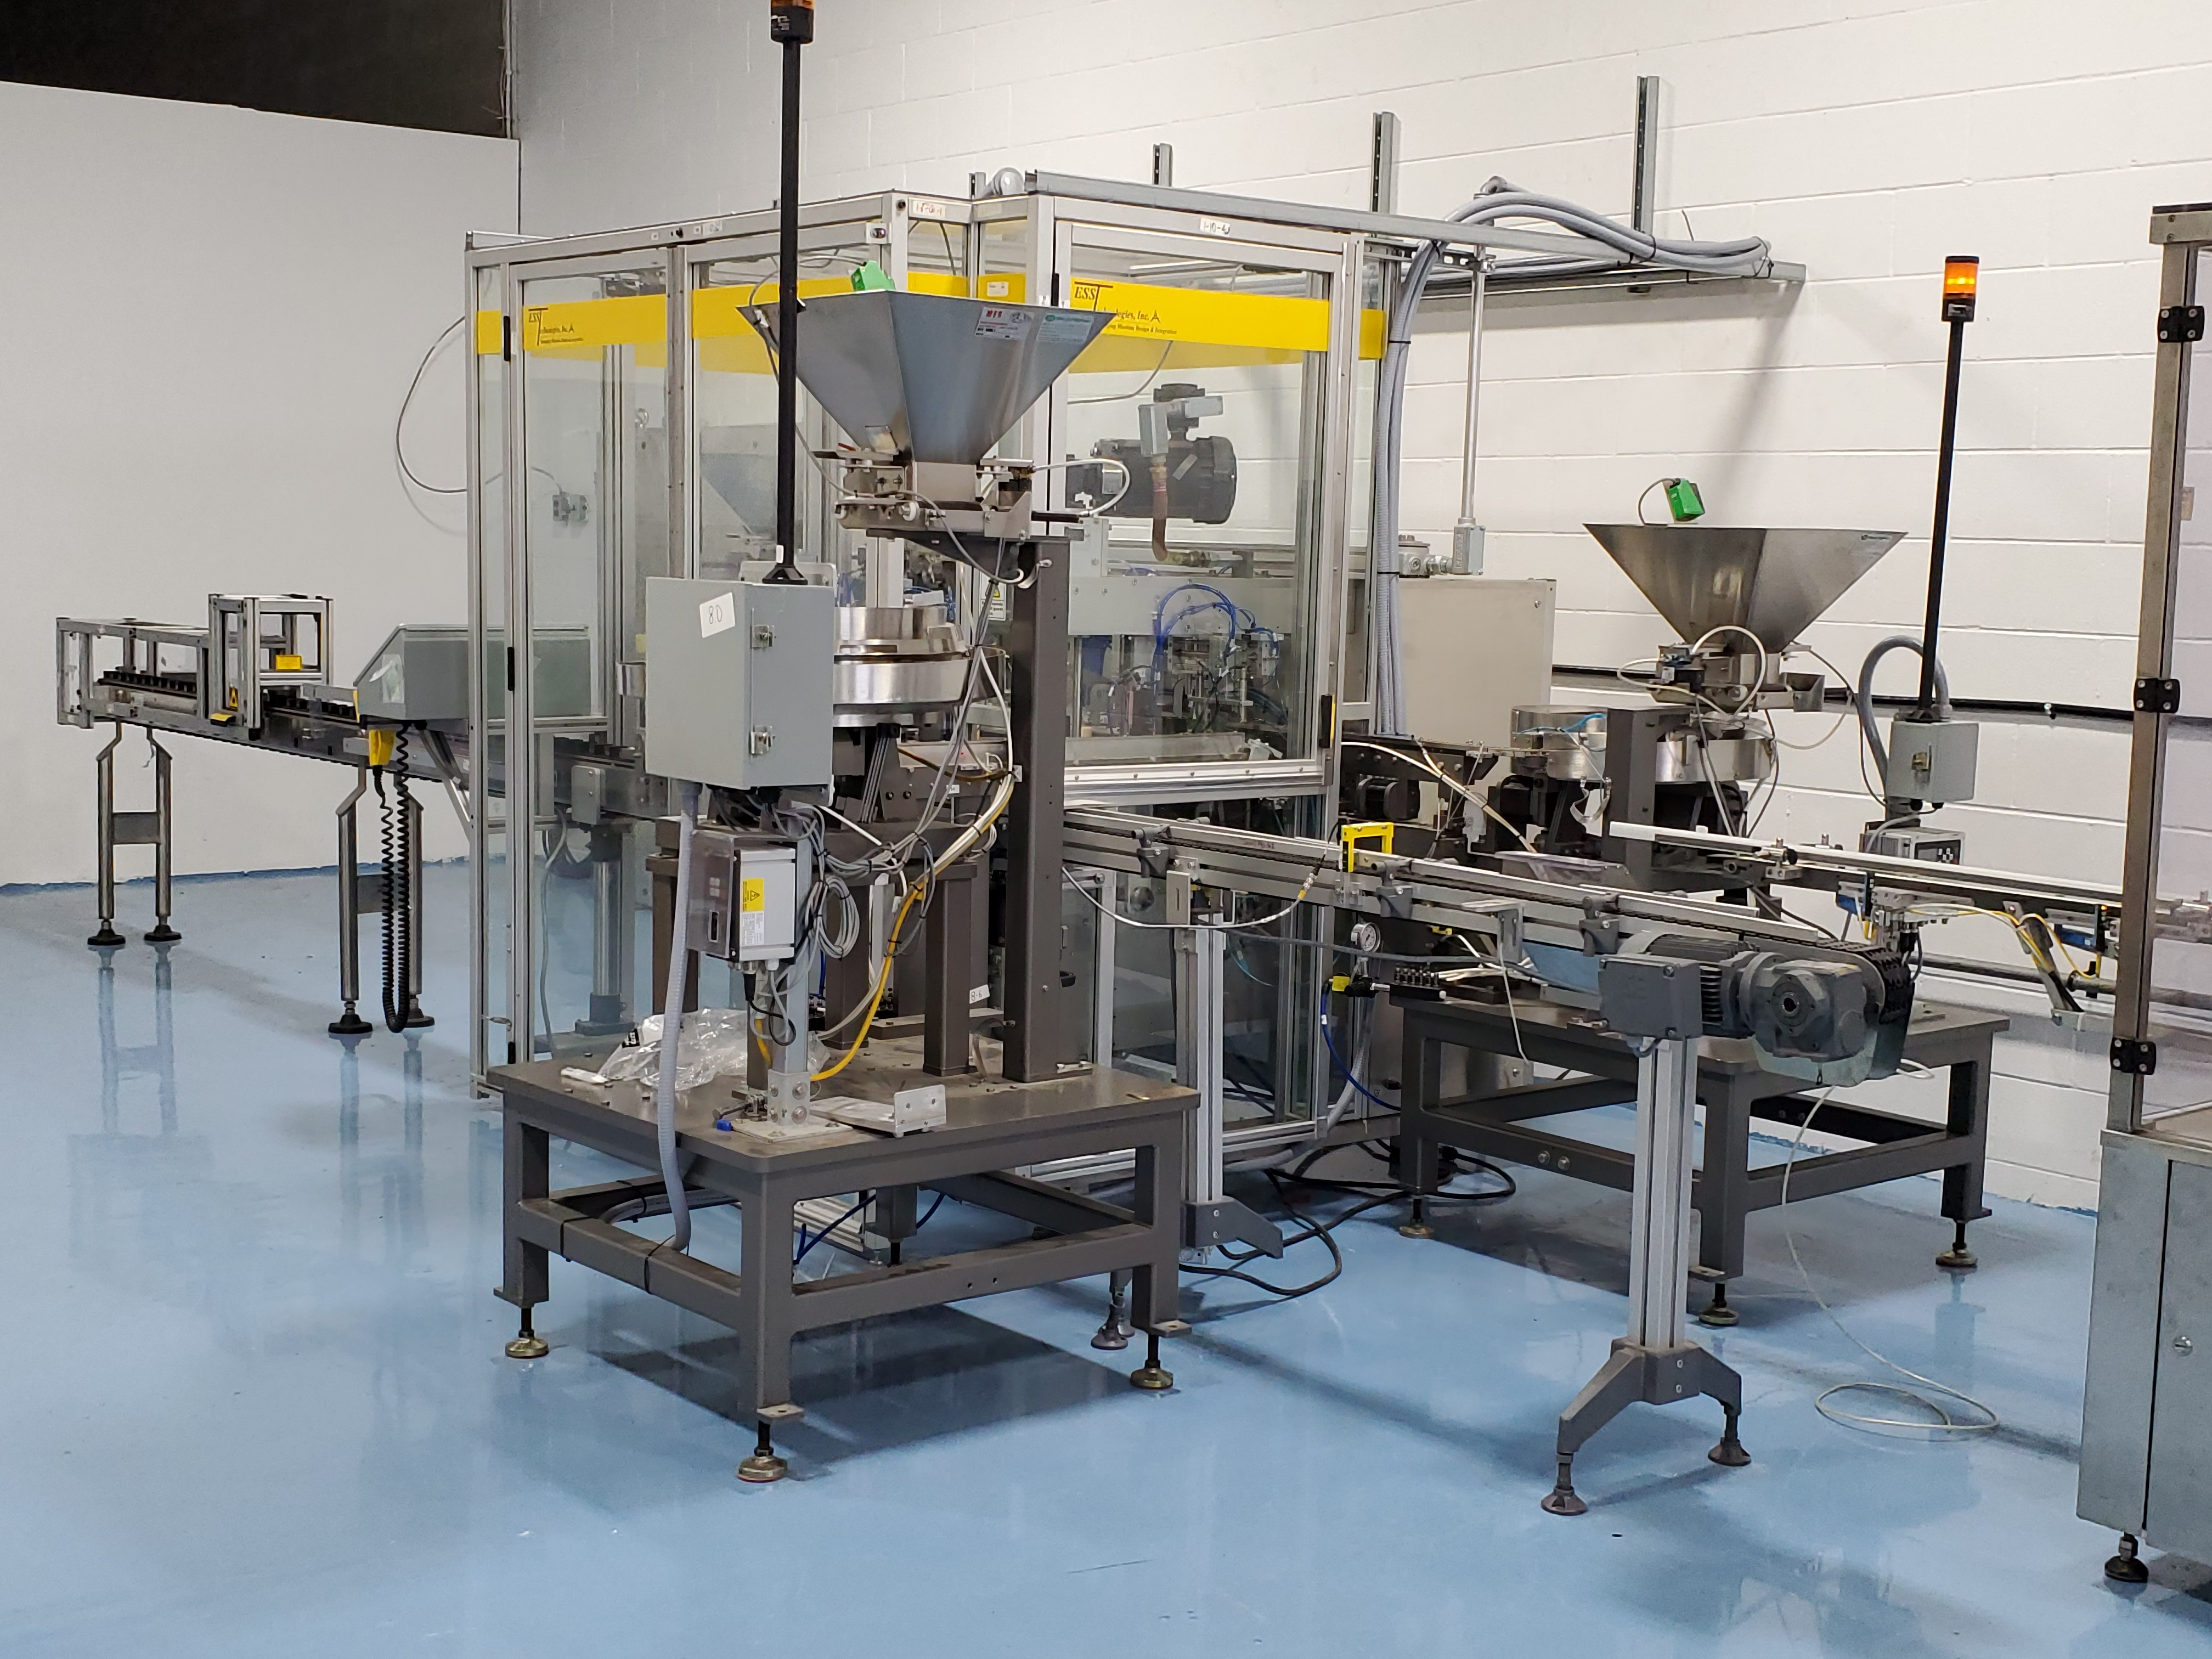 ESS TECHNOLOGIES MB60XP EXPLOSION PROOF MONOBLOCK FILLING & SEALING SYSTEM - Image 6 of 11